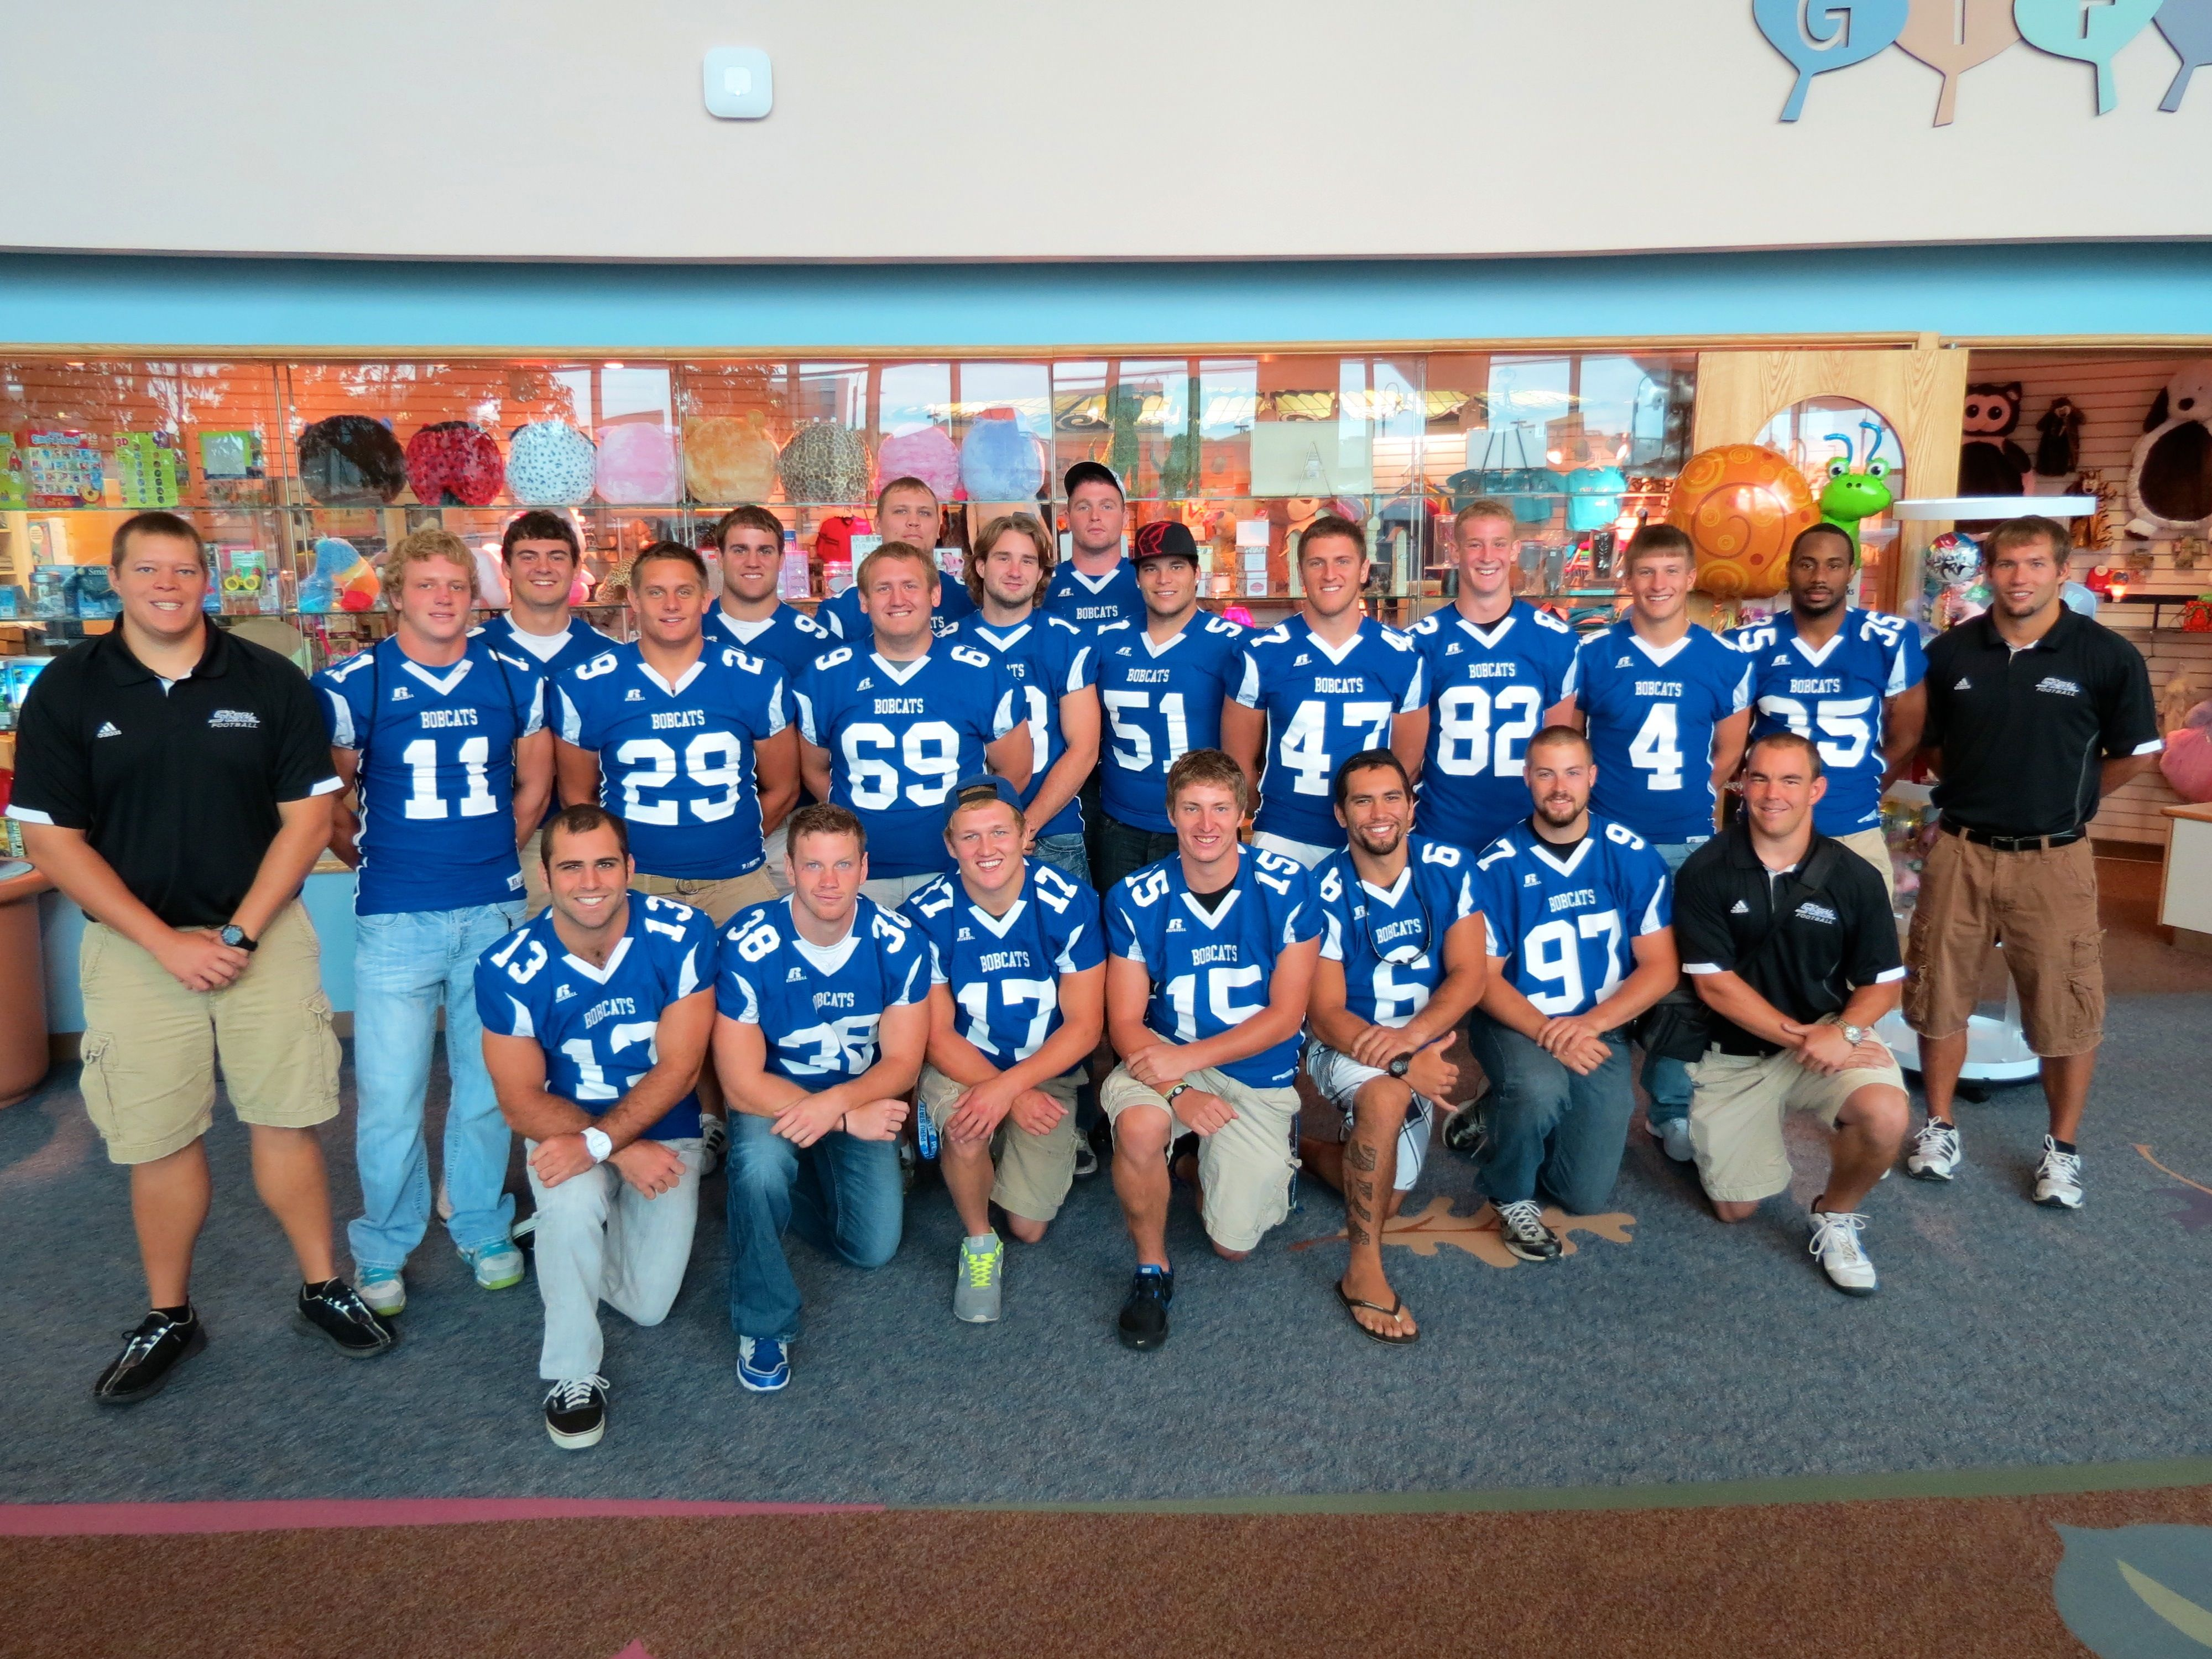 peru state college nebraska football team stops by to spend time